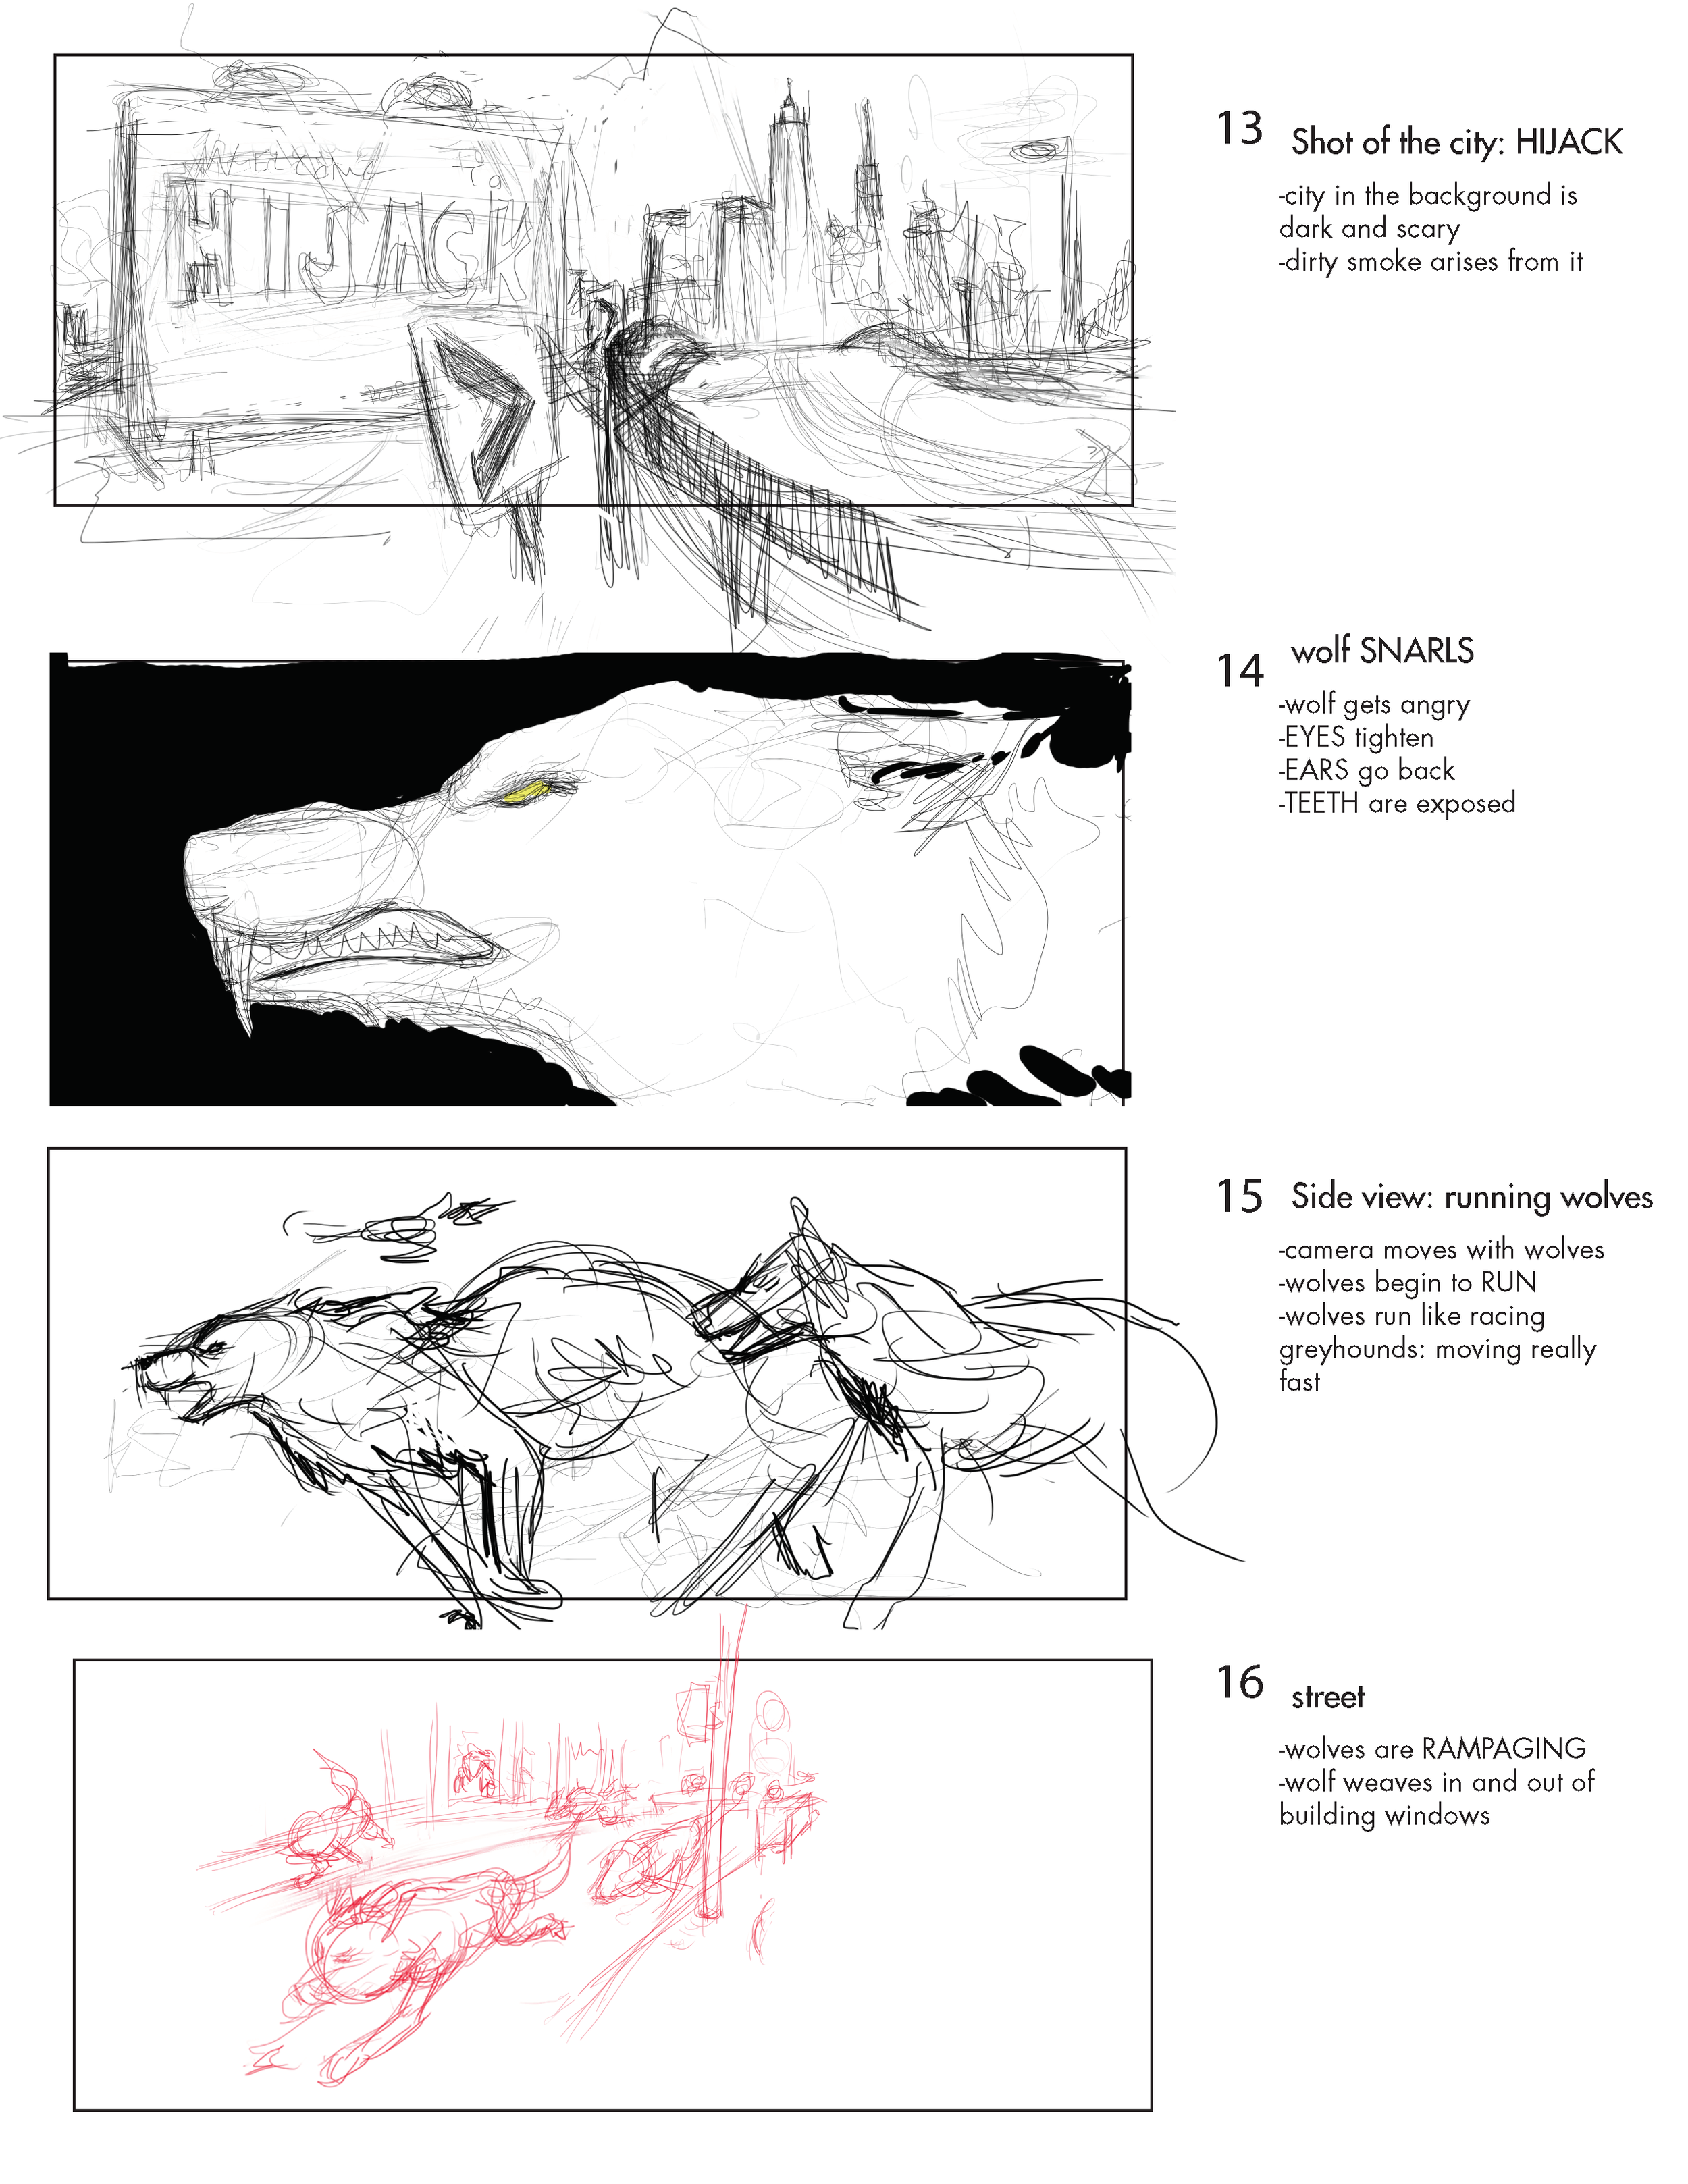 BOARDS copy_Page_4.png